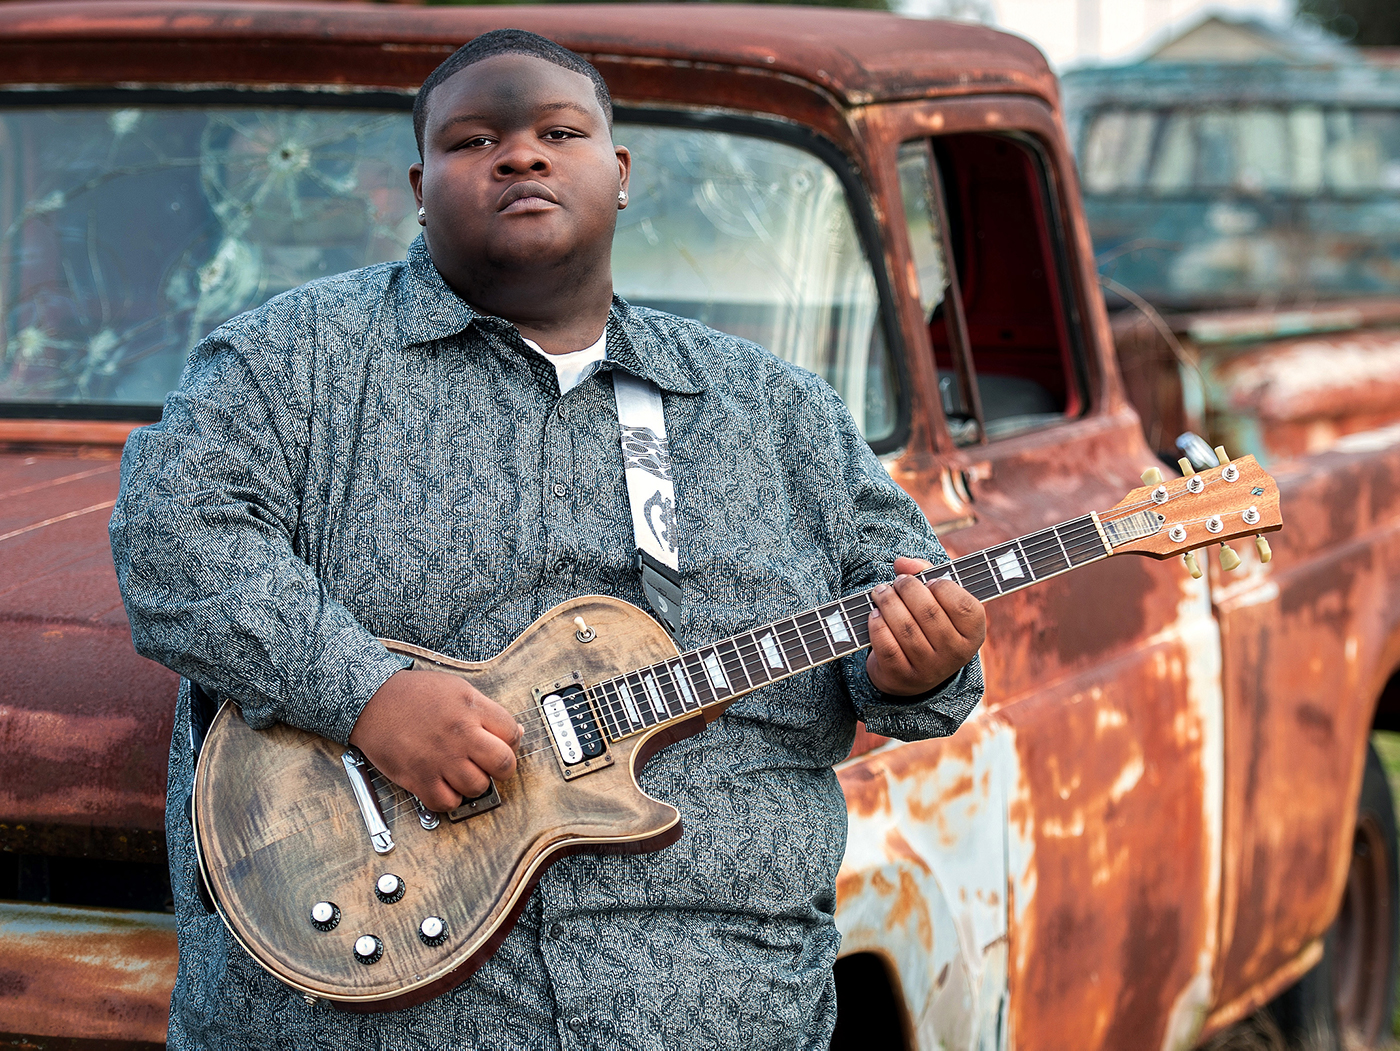 Kingfish posing with guitar in front of truck